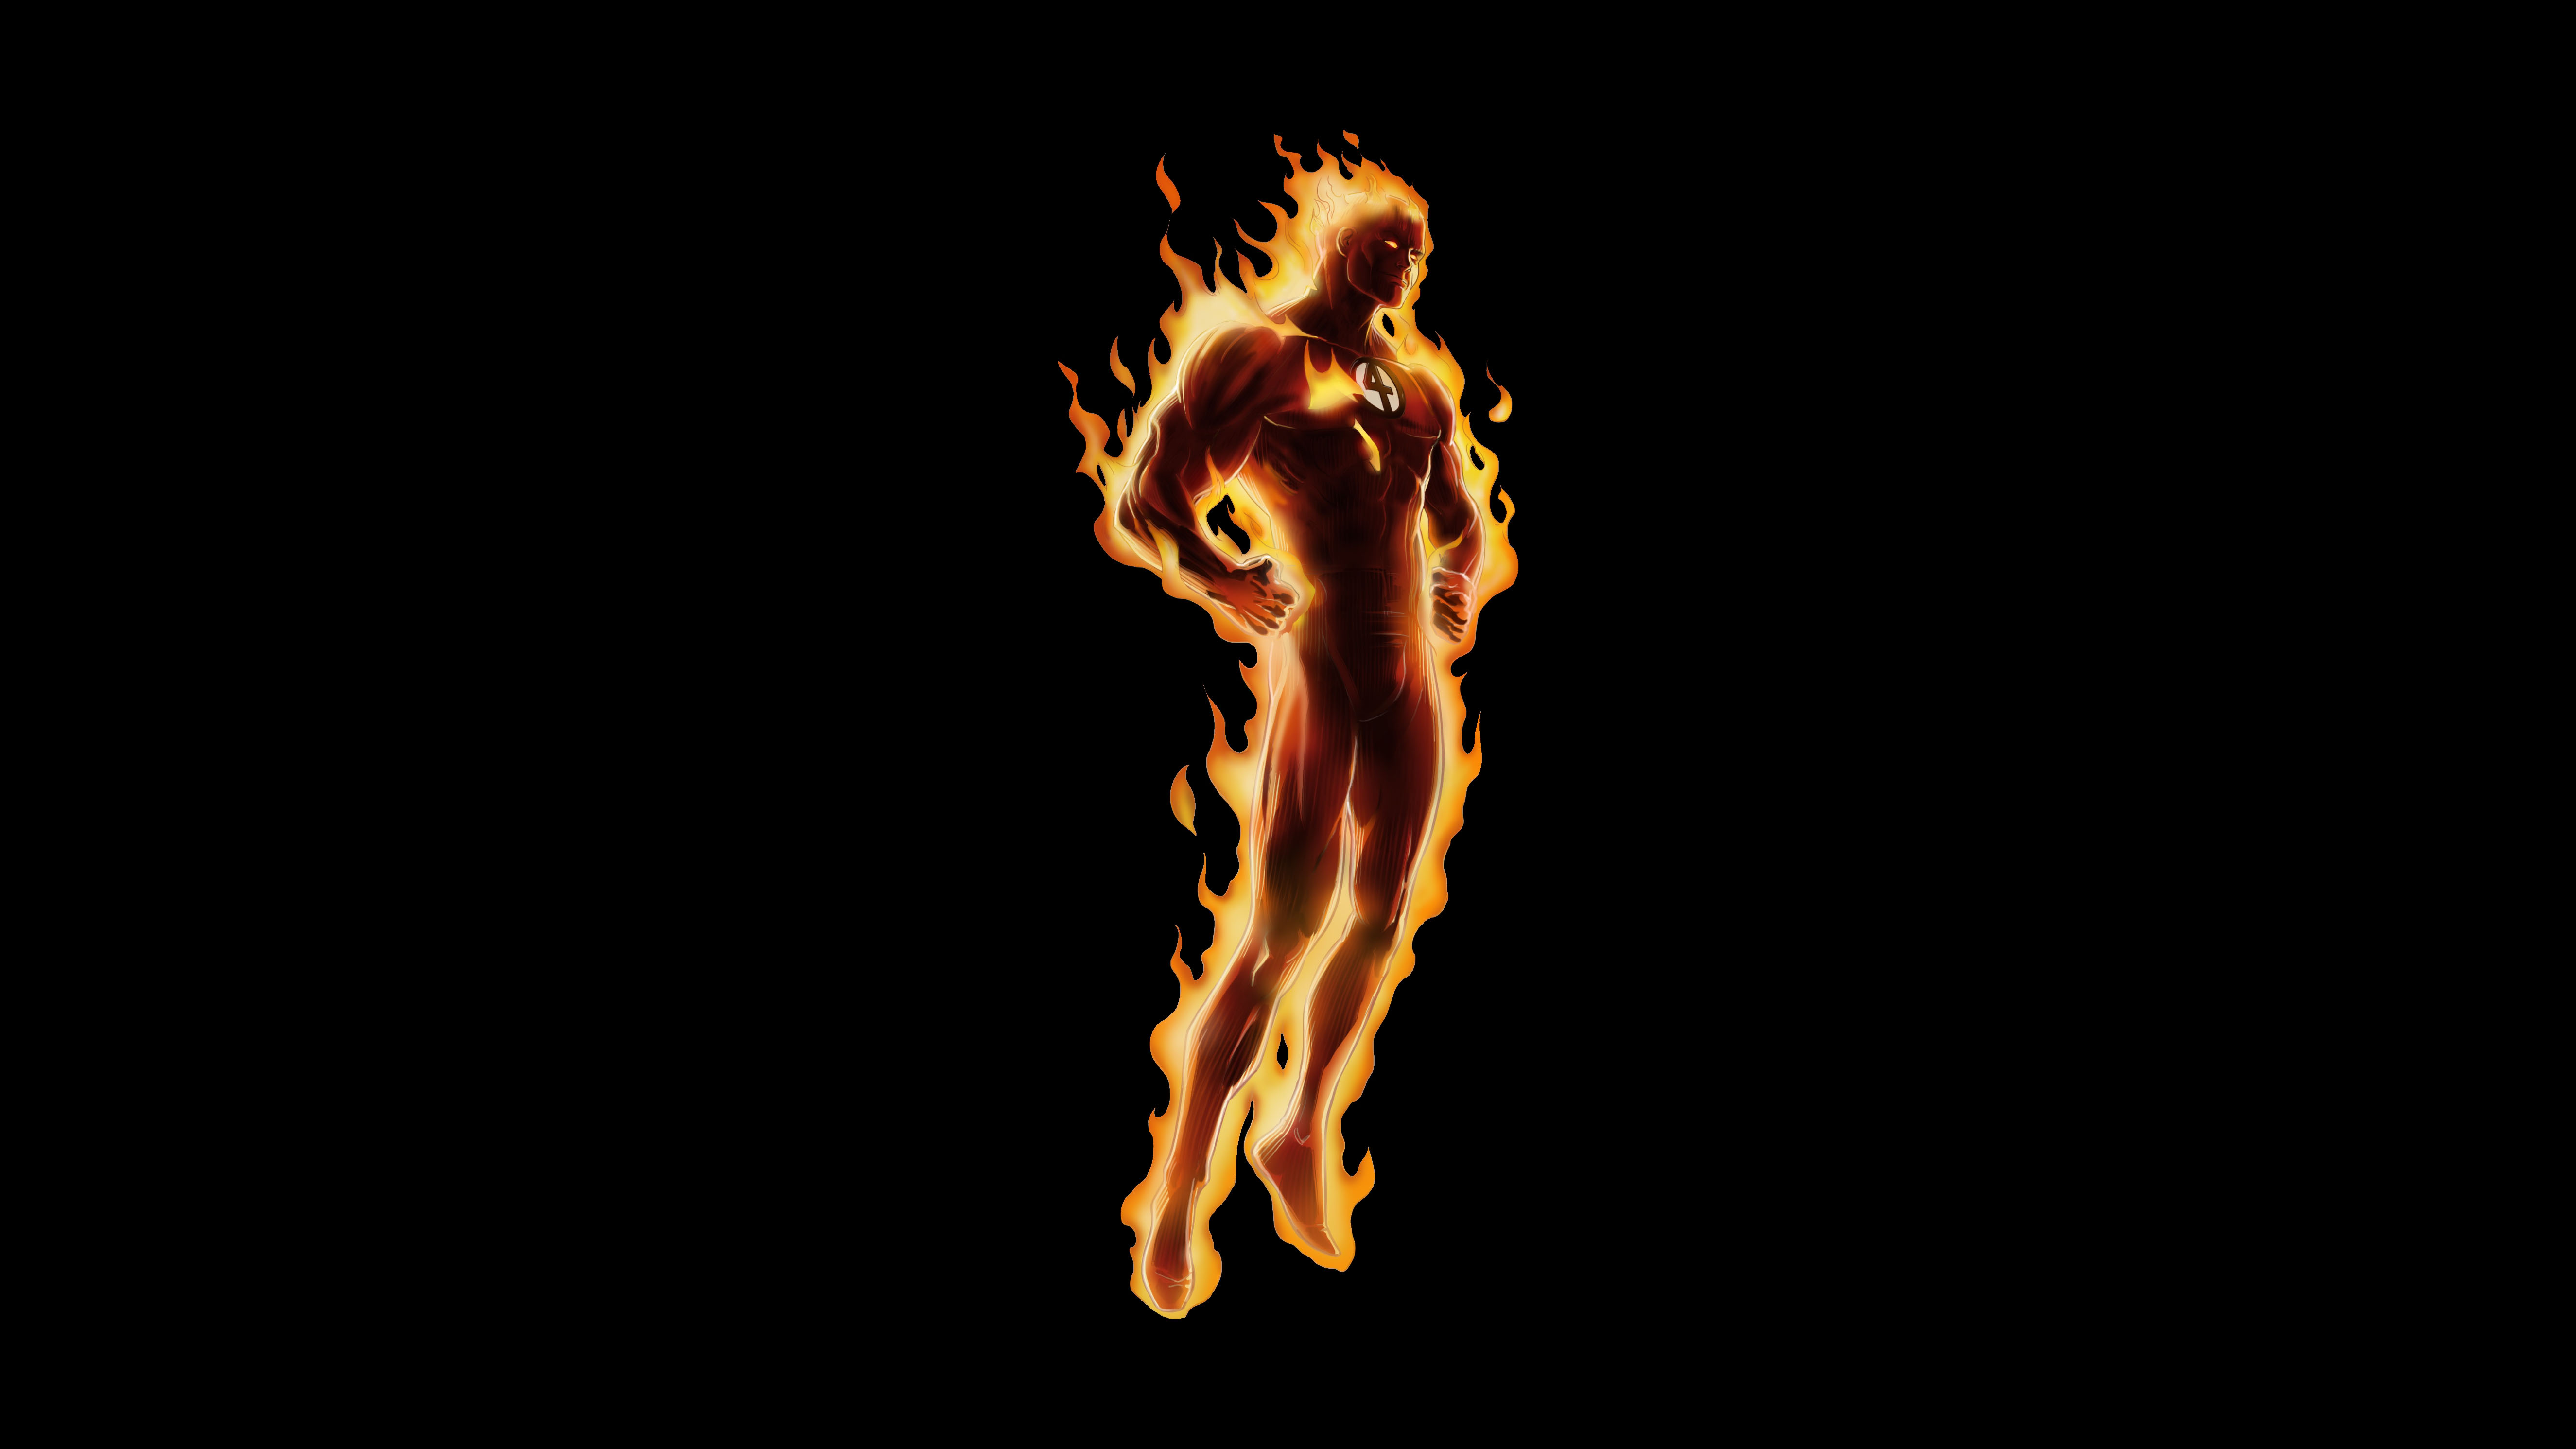 6 Human Torch HD Wallpapers Backgrounds 5300x2981